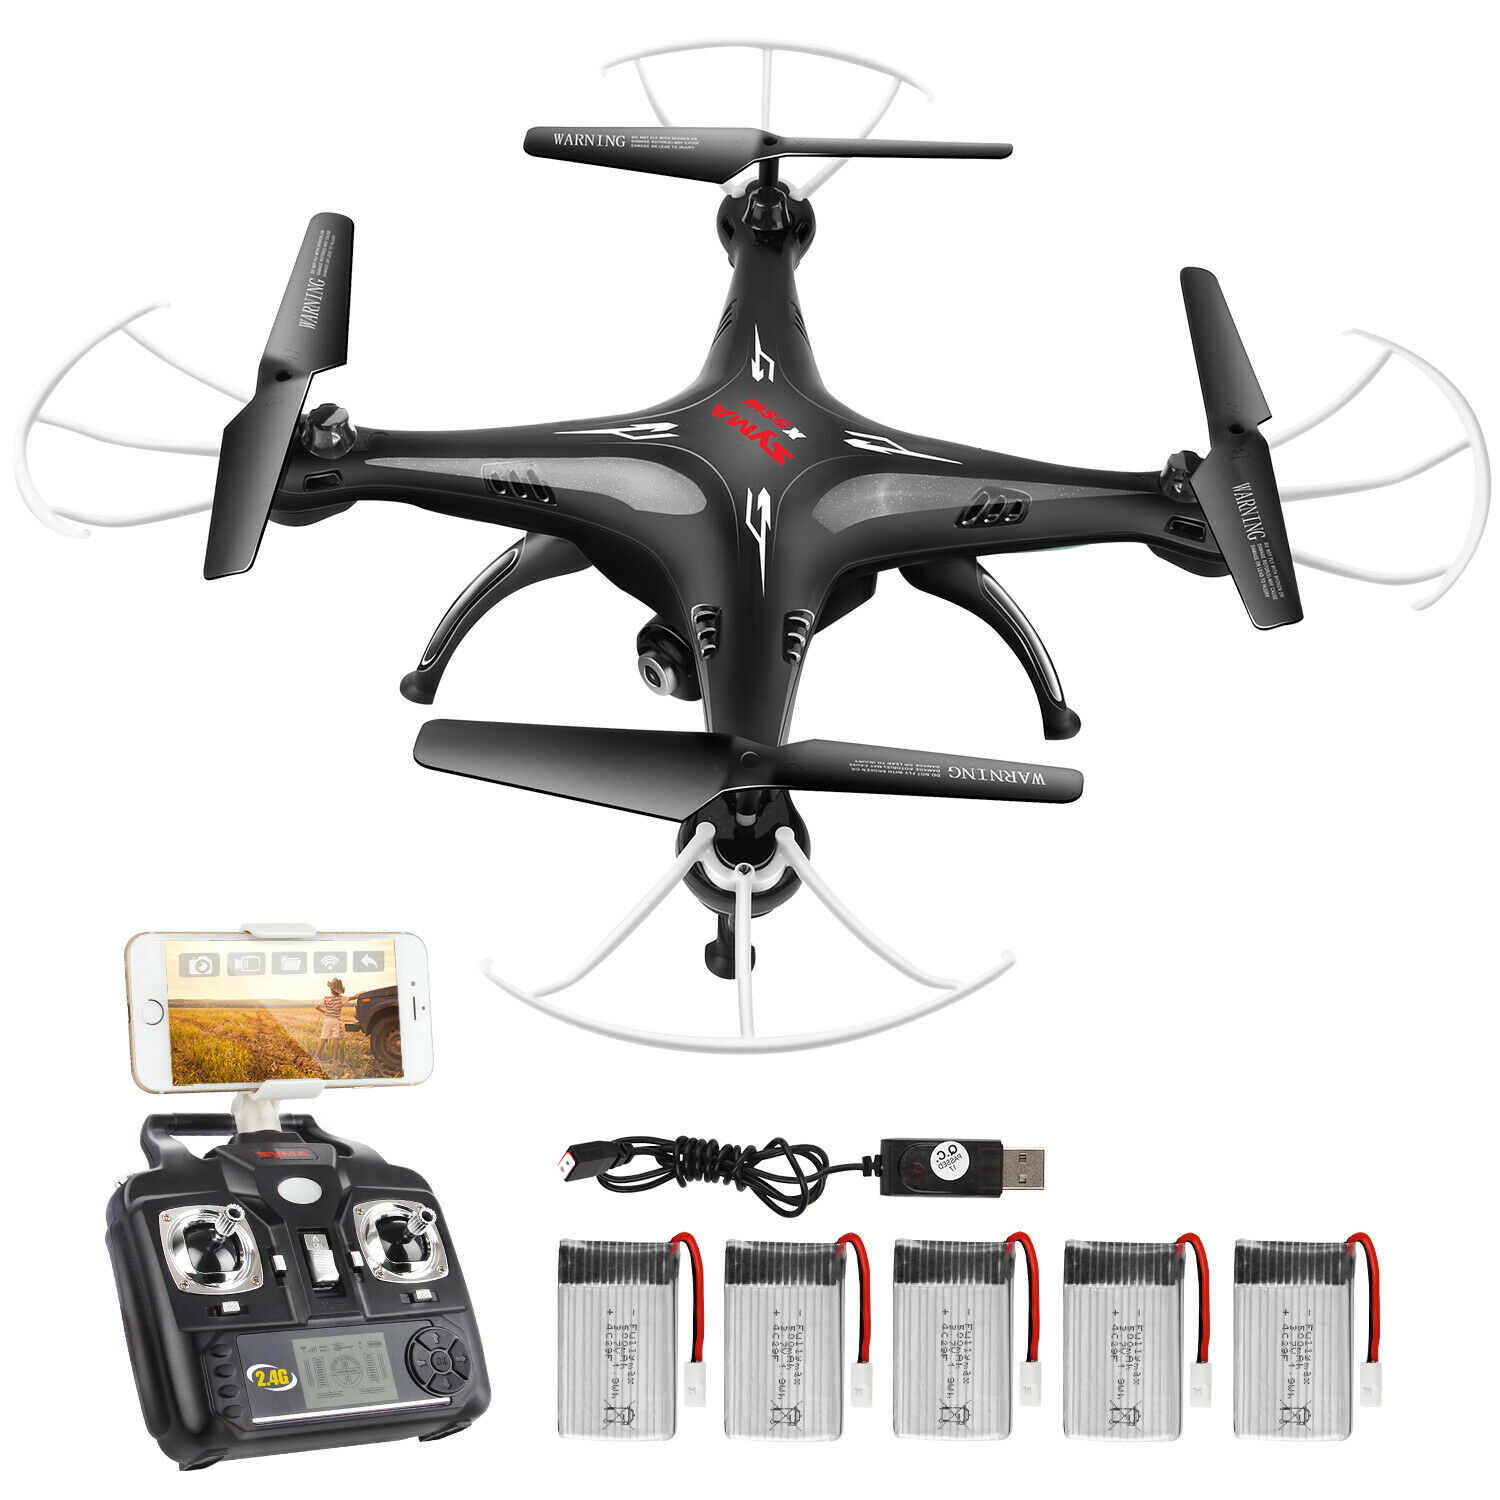 SYMA X5SW RC Quadcopter 2 4G 6-Axis Drone FPV With Camera Flip LED